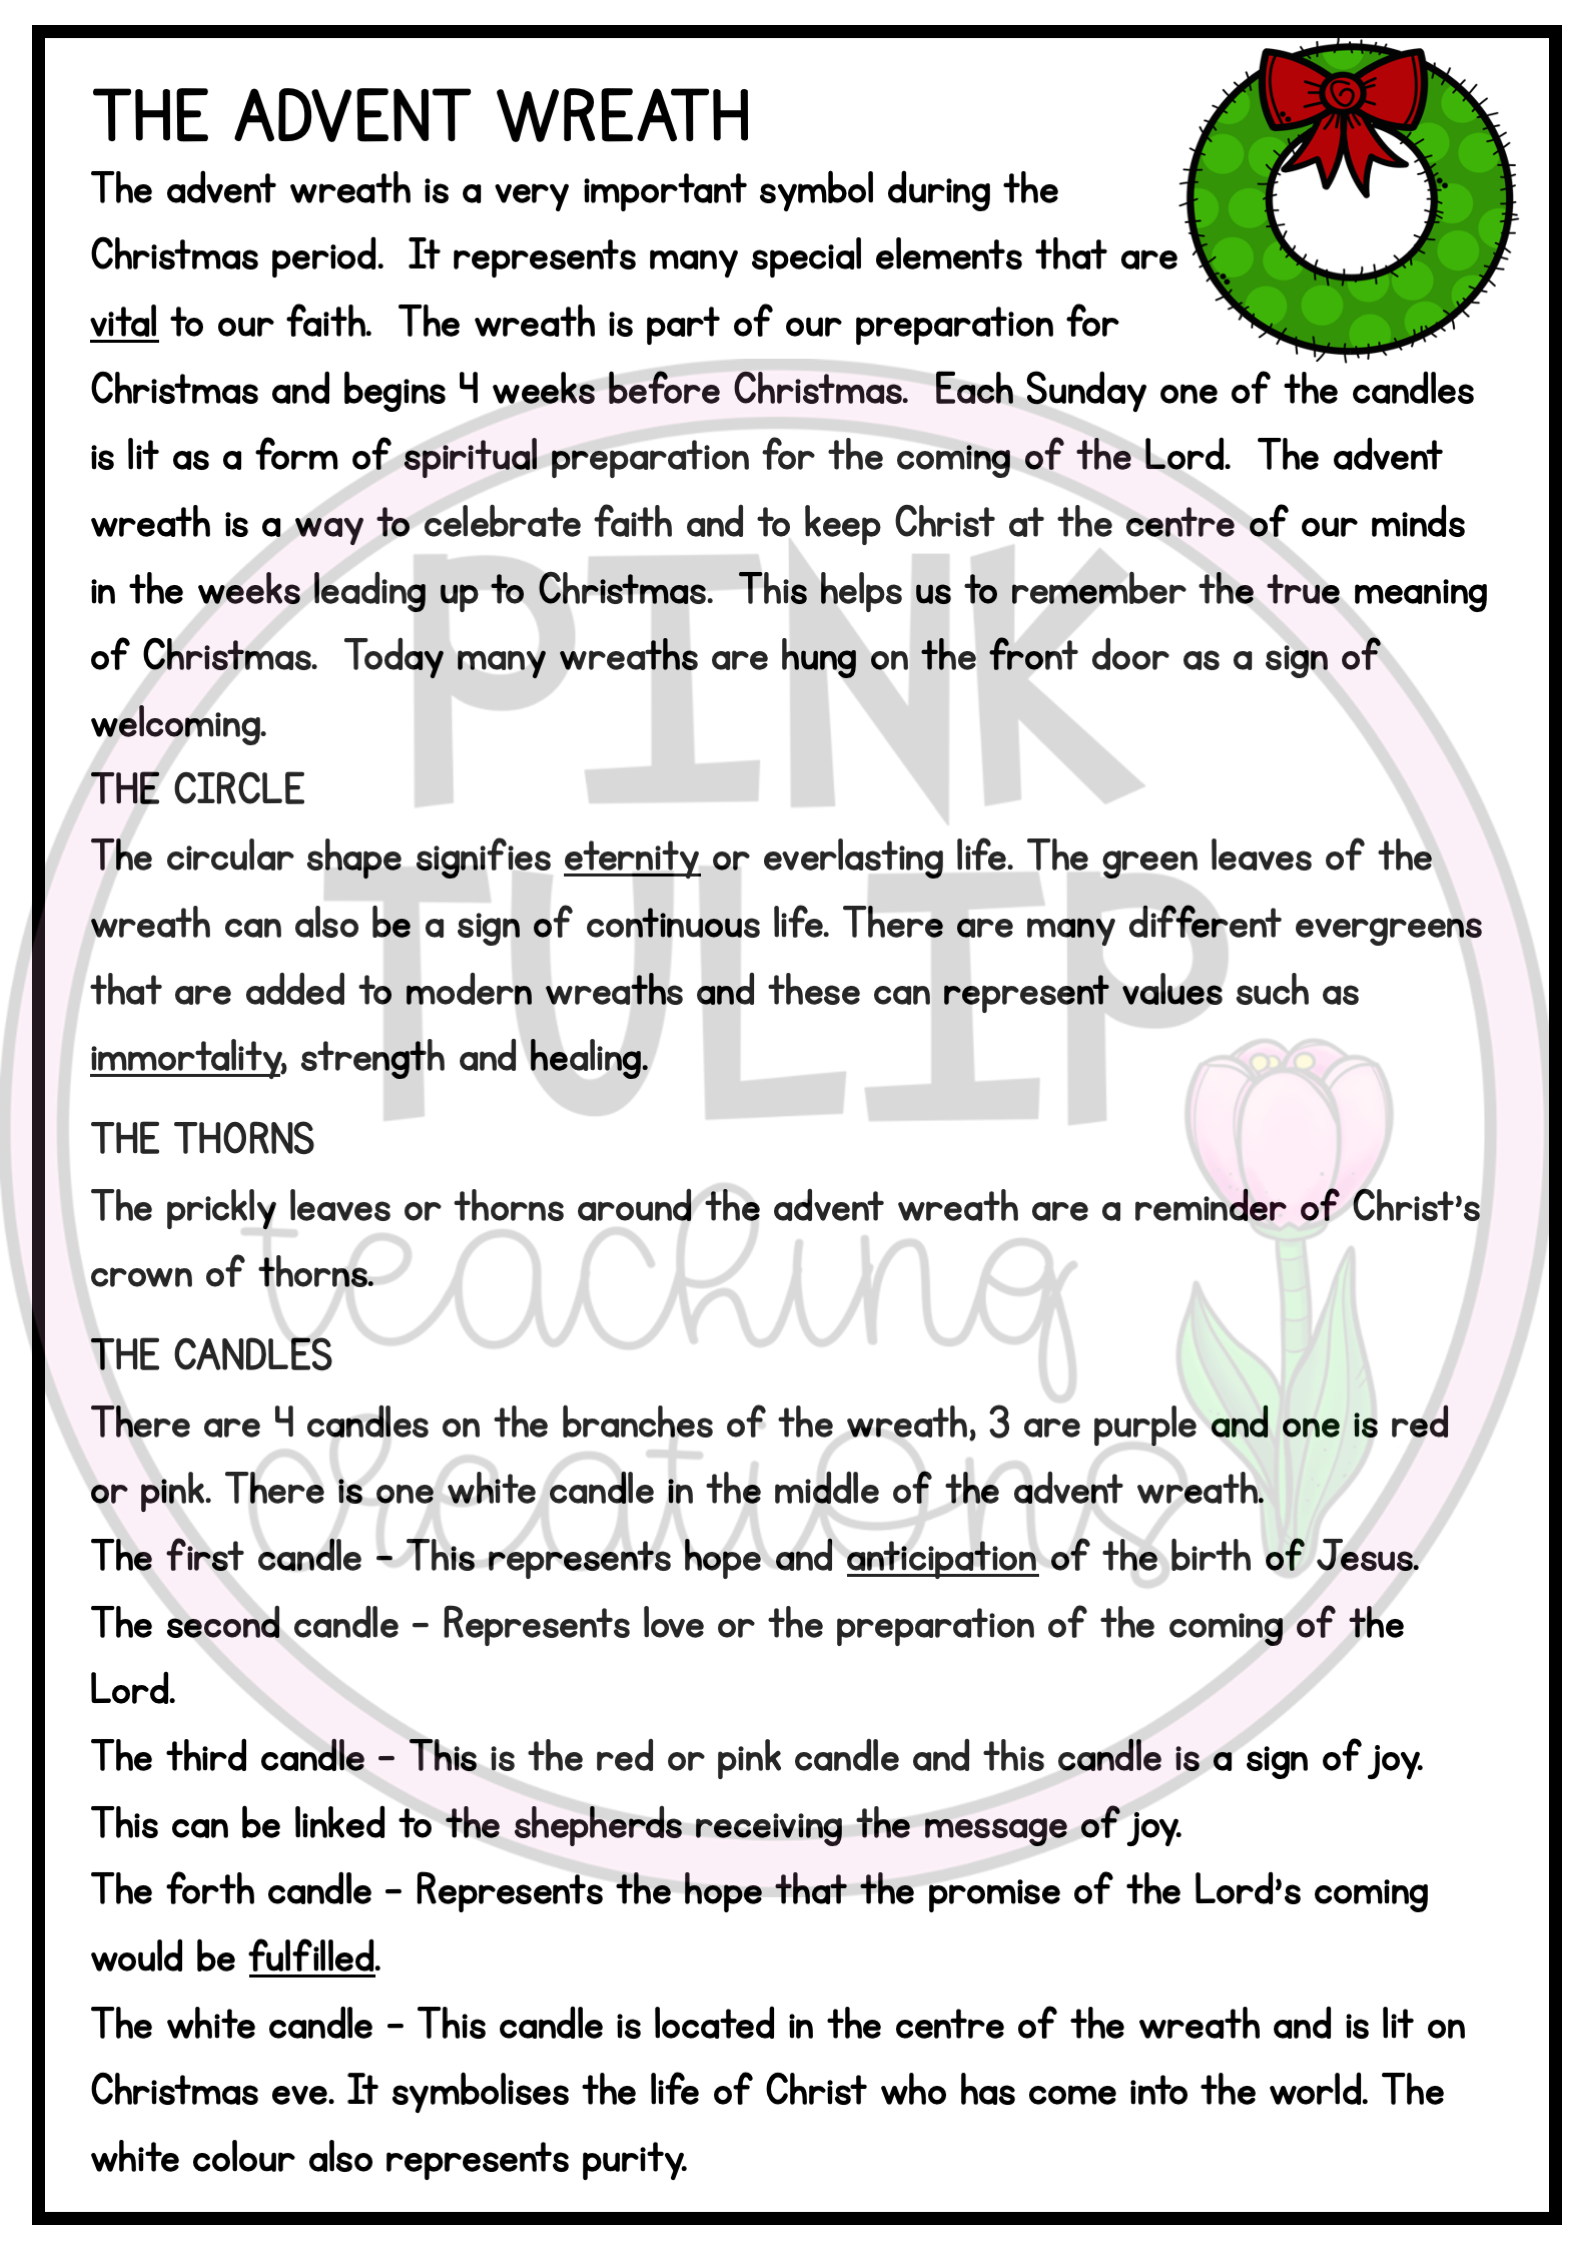 Advent Wreath Christmas Comprehension Reading Strategy Worksheet Reading Strategies Reading Comprehension Resources Comprehension [ 2249 x 1589 Pixel ]